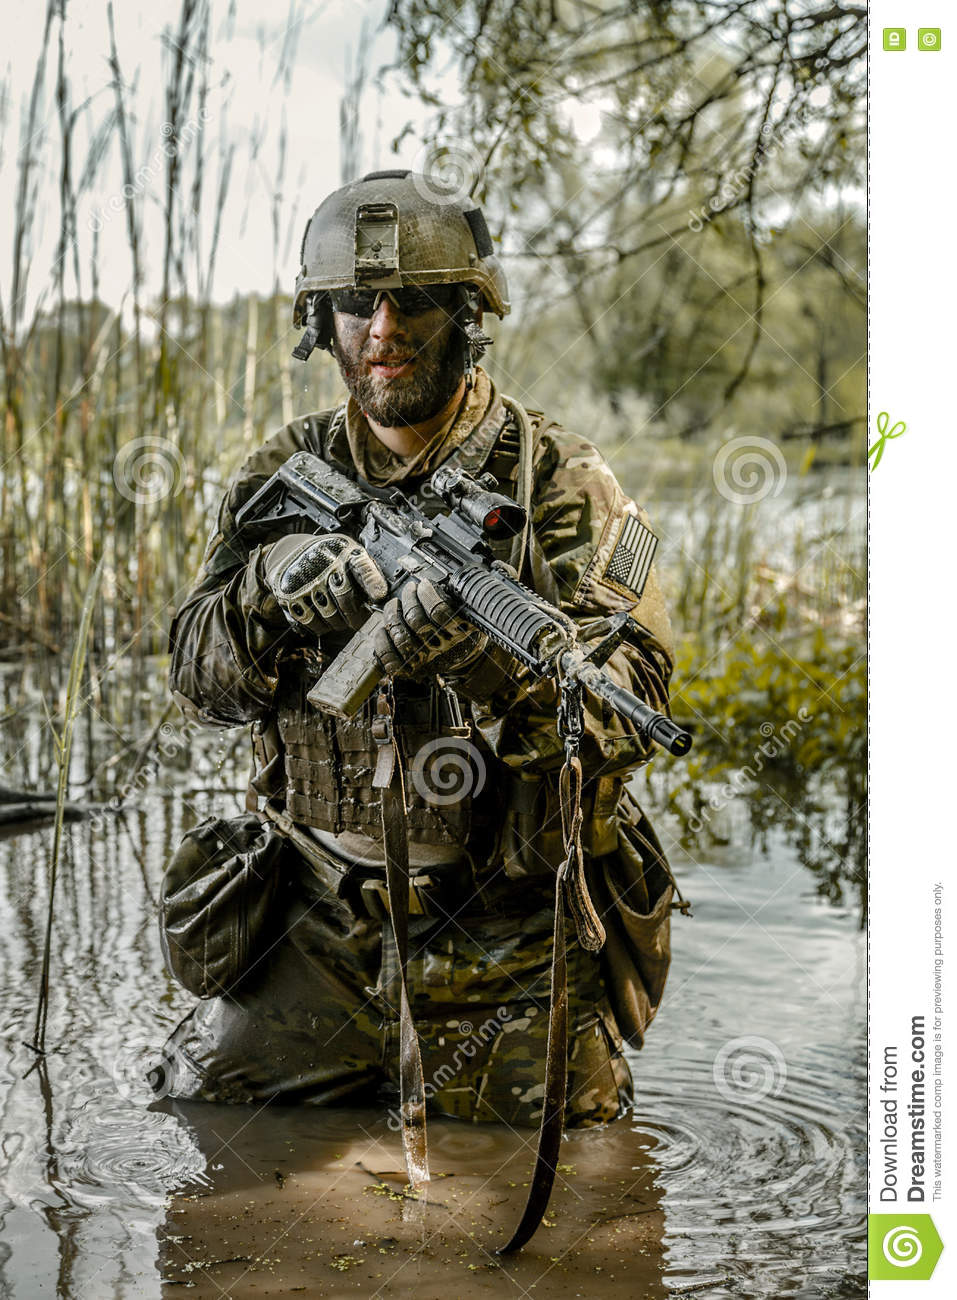 Green Beret In Action Stock Photo - Image: 75155034